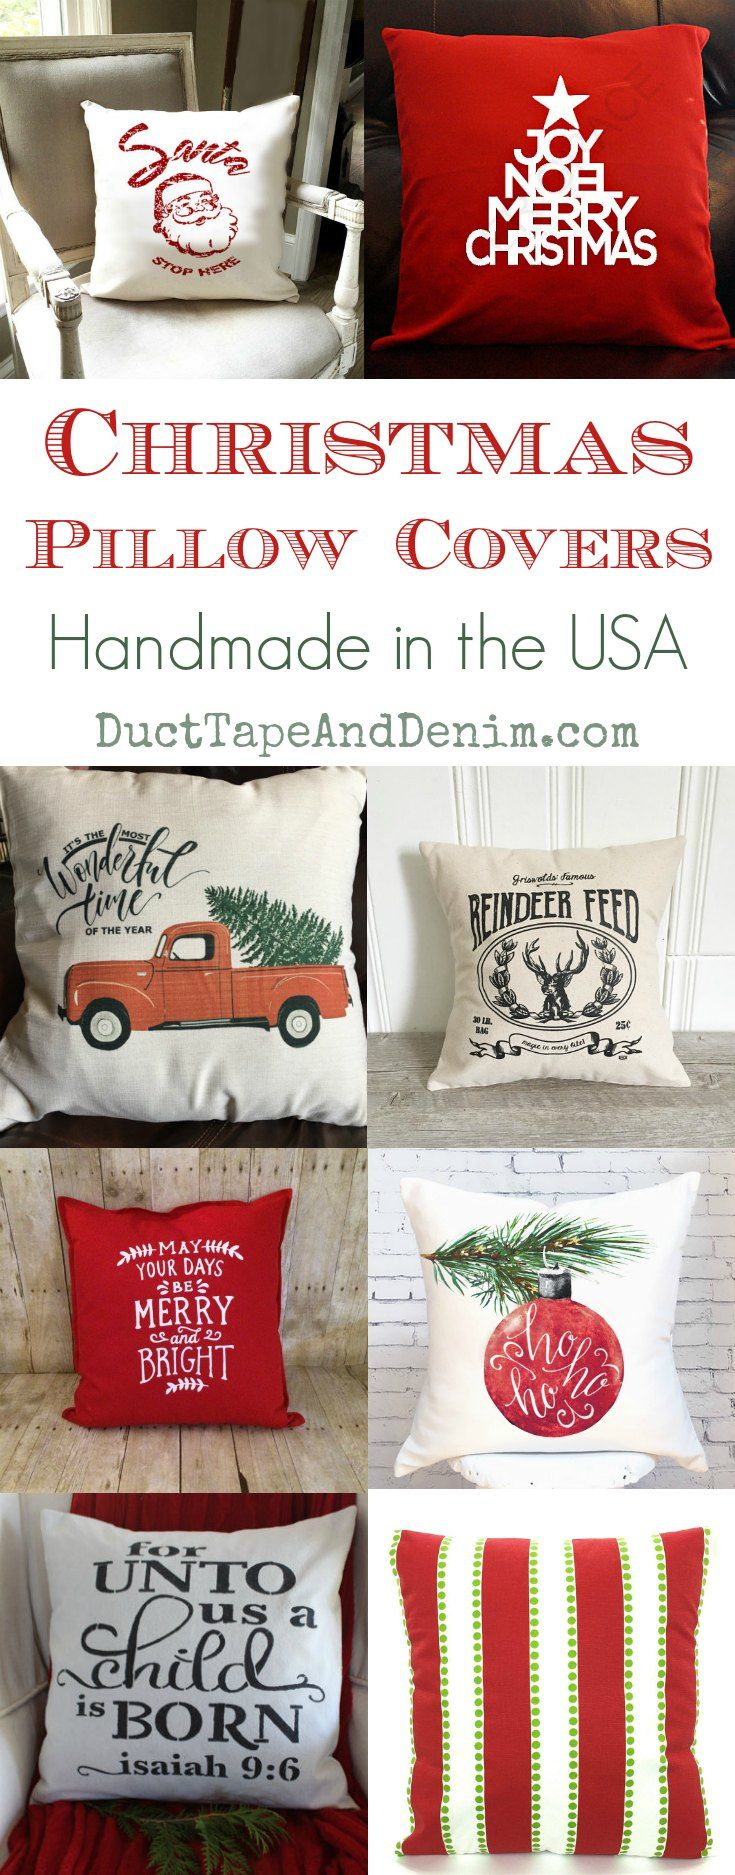 Christmas pillow covers, handmade in the USA! Holiday pillows, throw blankets, DIY Christmas, and holiday decor ideas on DuctTapeAndDenim.com  #christmaspillows #christmaspillowcovers